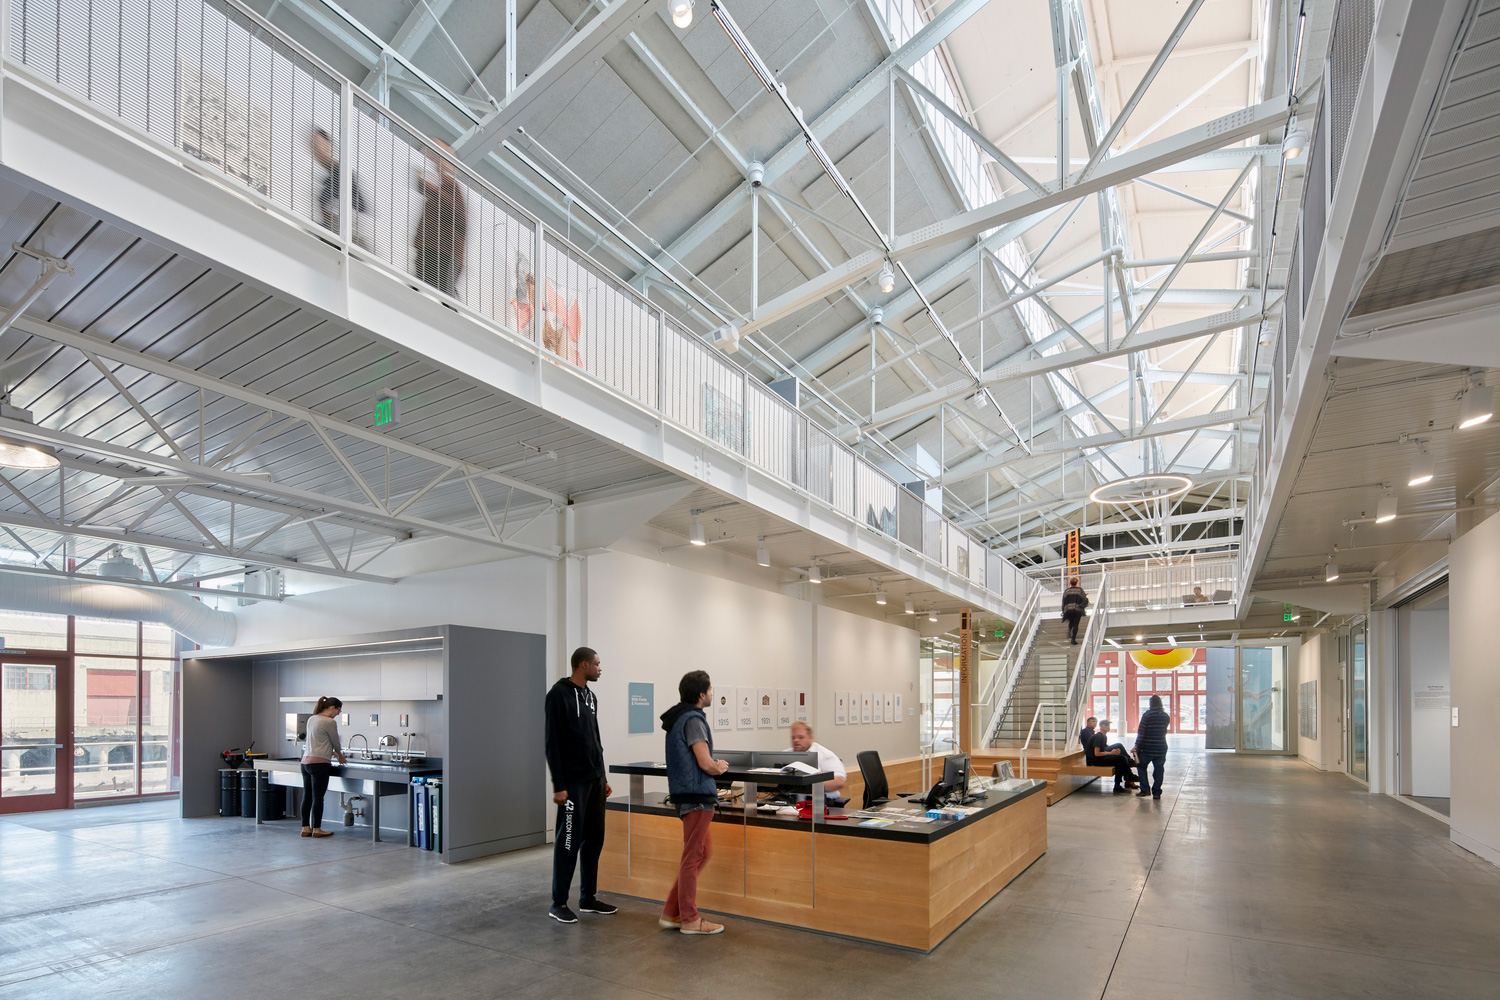 Interior of a converted warehouse with exposed trusses, now a building for the San Francisco Art Institute